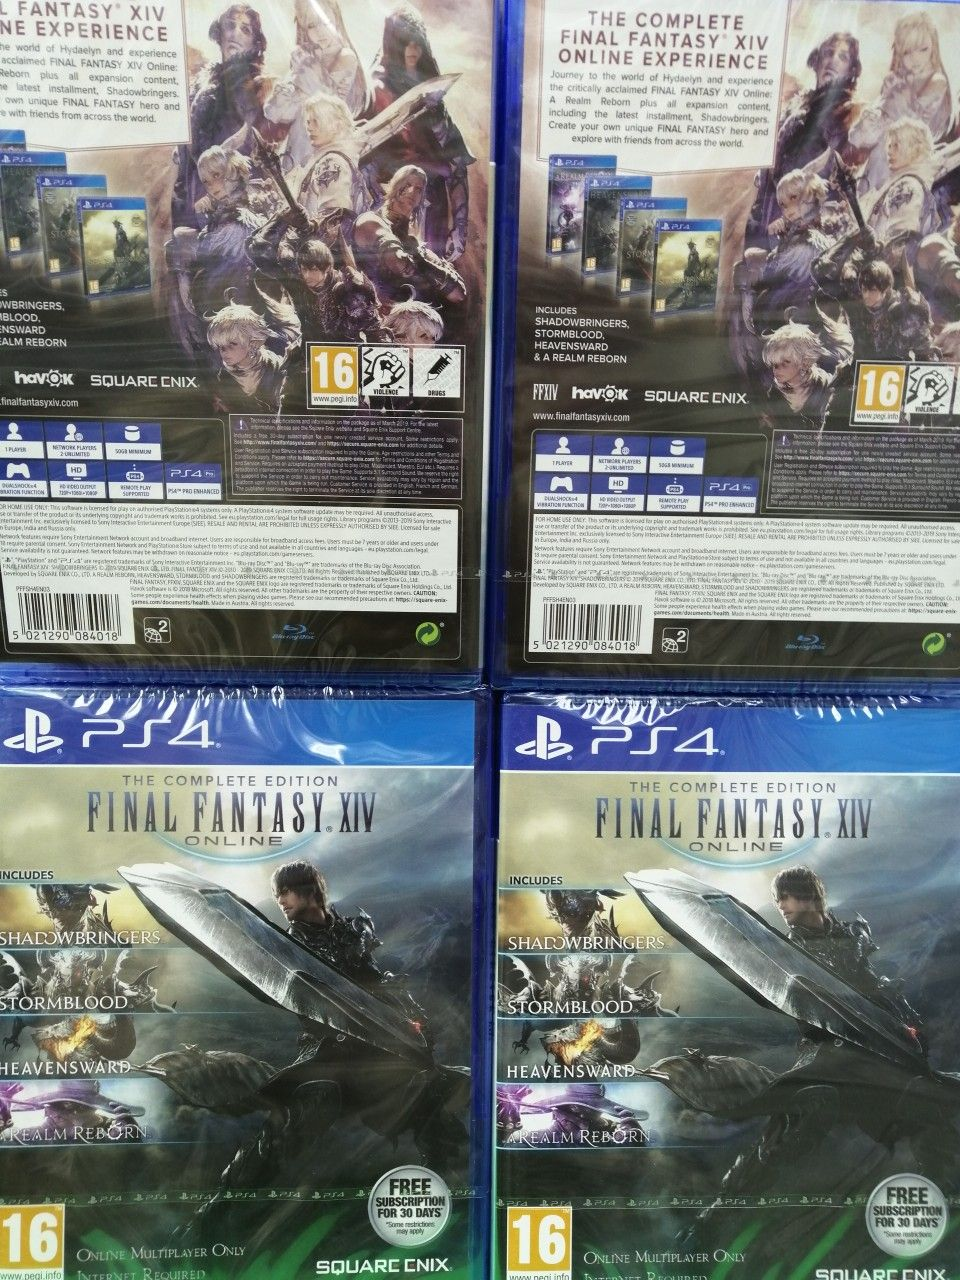 Ps4 The Complete Edition Final Fantasy Xiv Online Ean